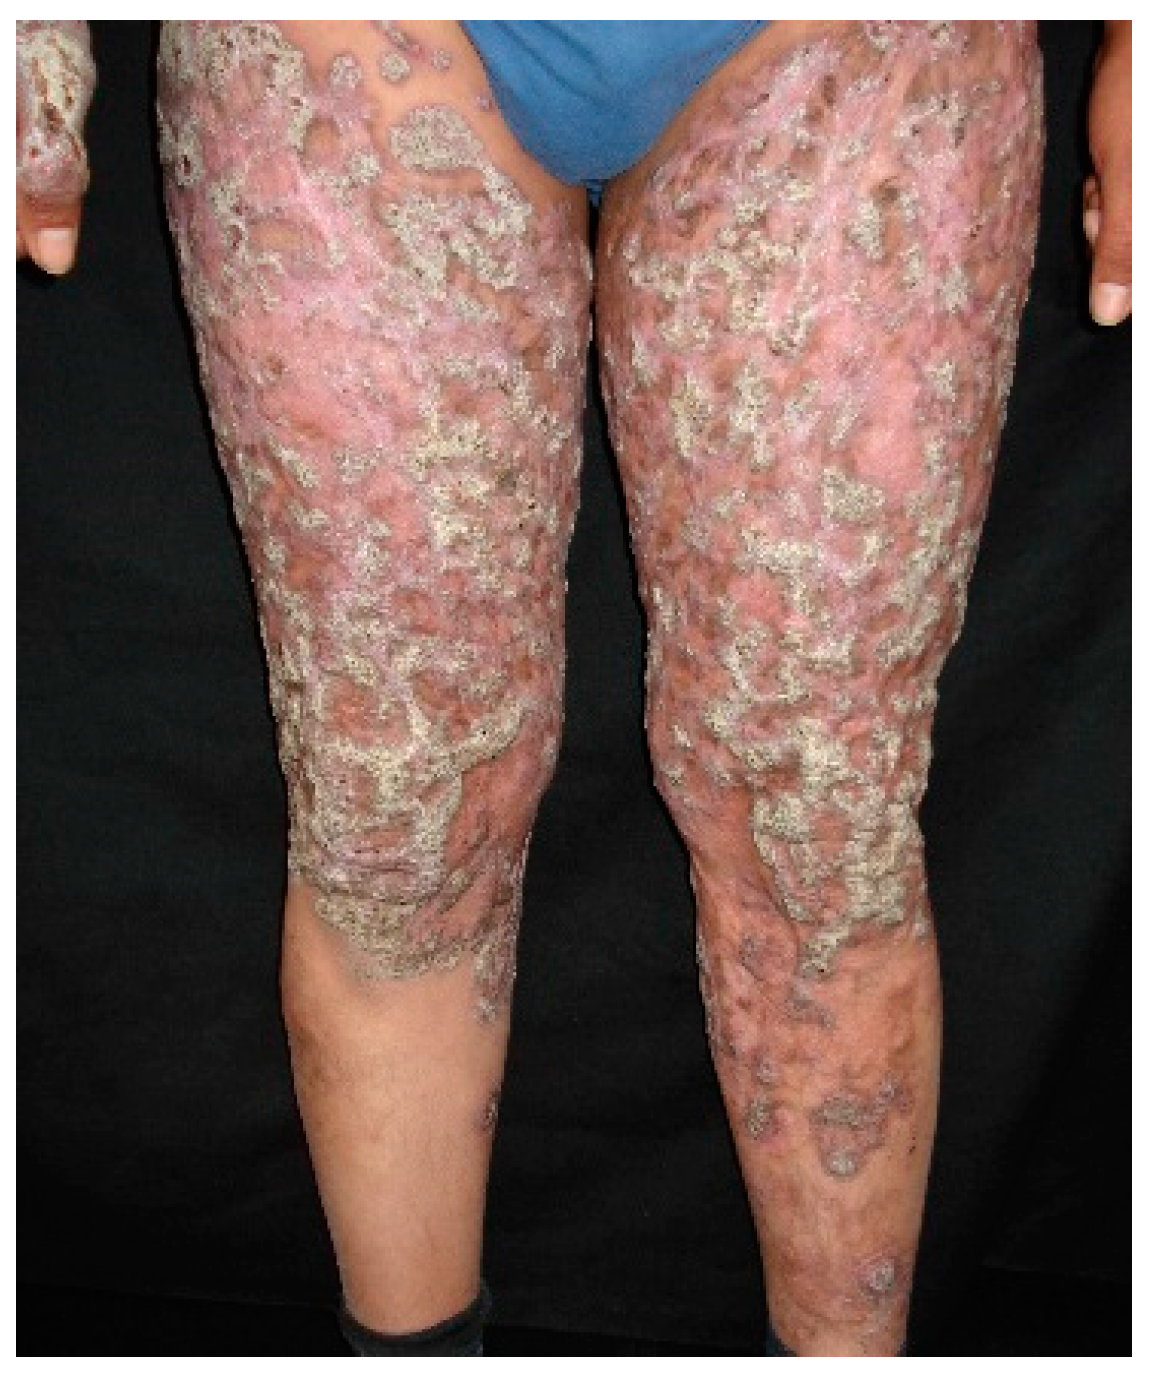 Cutaneous Disseminated and Extracutaneous Sporotrichosis: Current Status of a Complex Disease